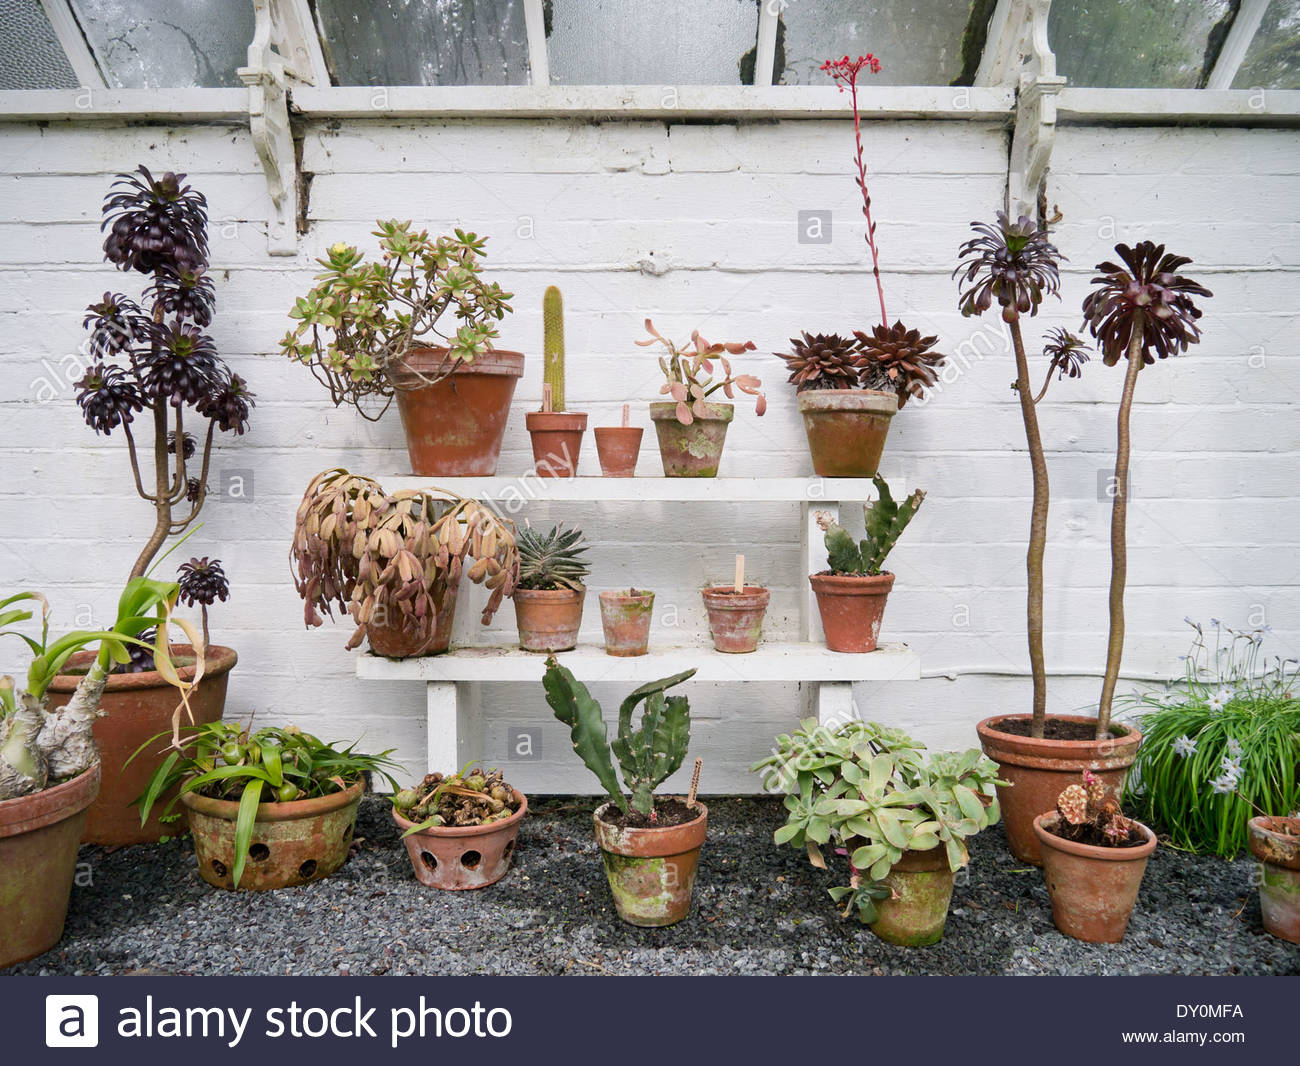 Plants in the greenhouse at Hergest Croft Gardens: Kington, Herefordshire, England. - Stock Image